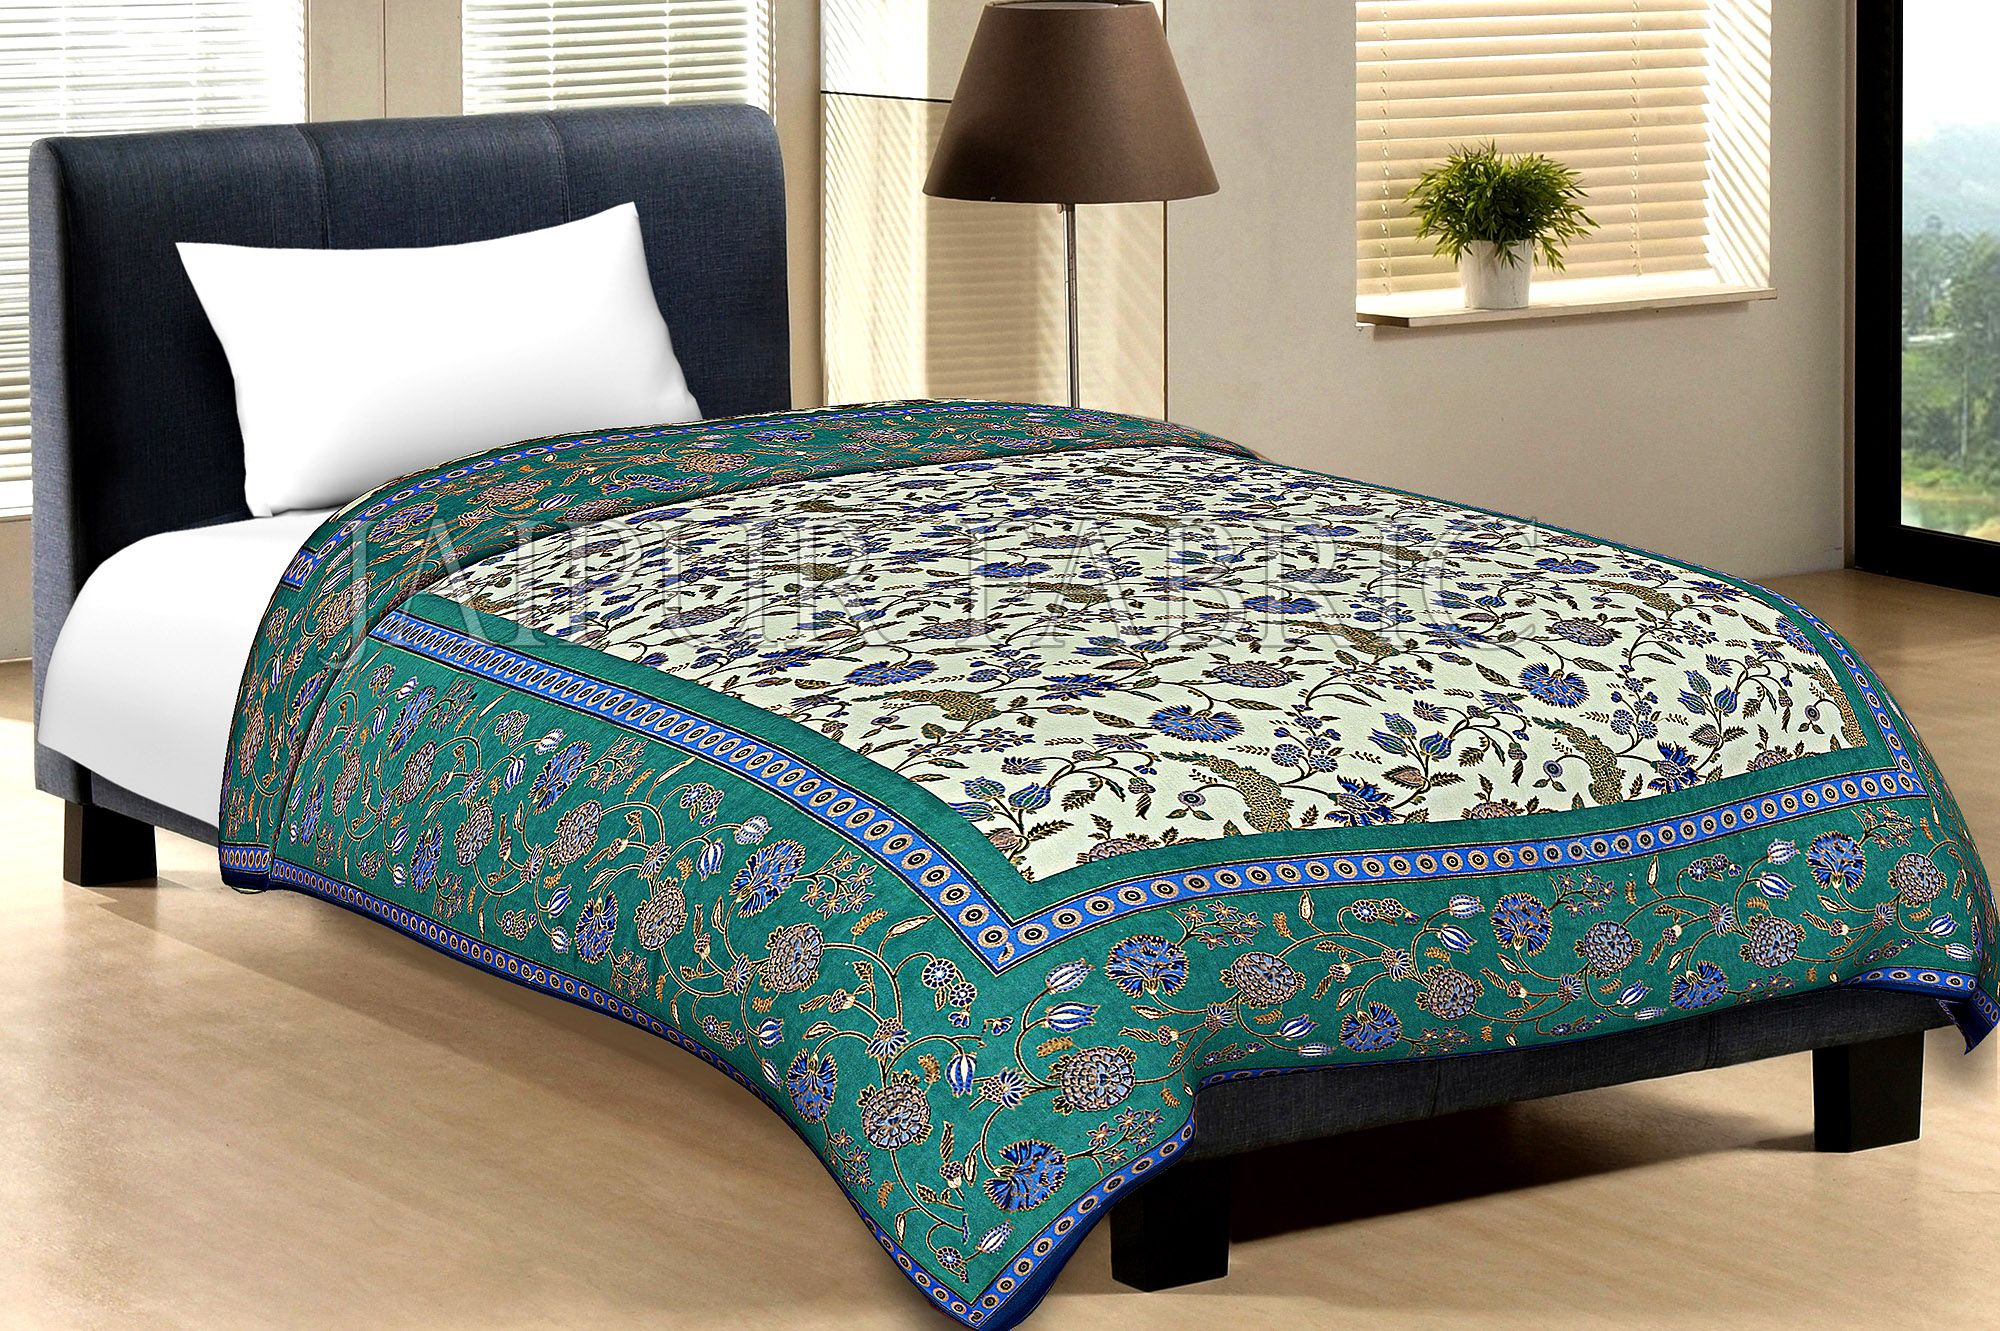 Green Border With Navy Blue Edge Cream Base Leaf And Flower Golden Print Cotton Single Bed Sheet With Out Pillow Cover